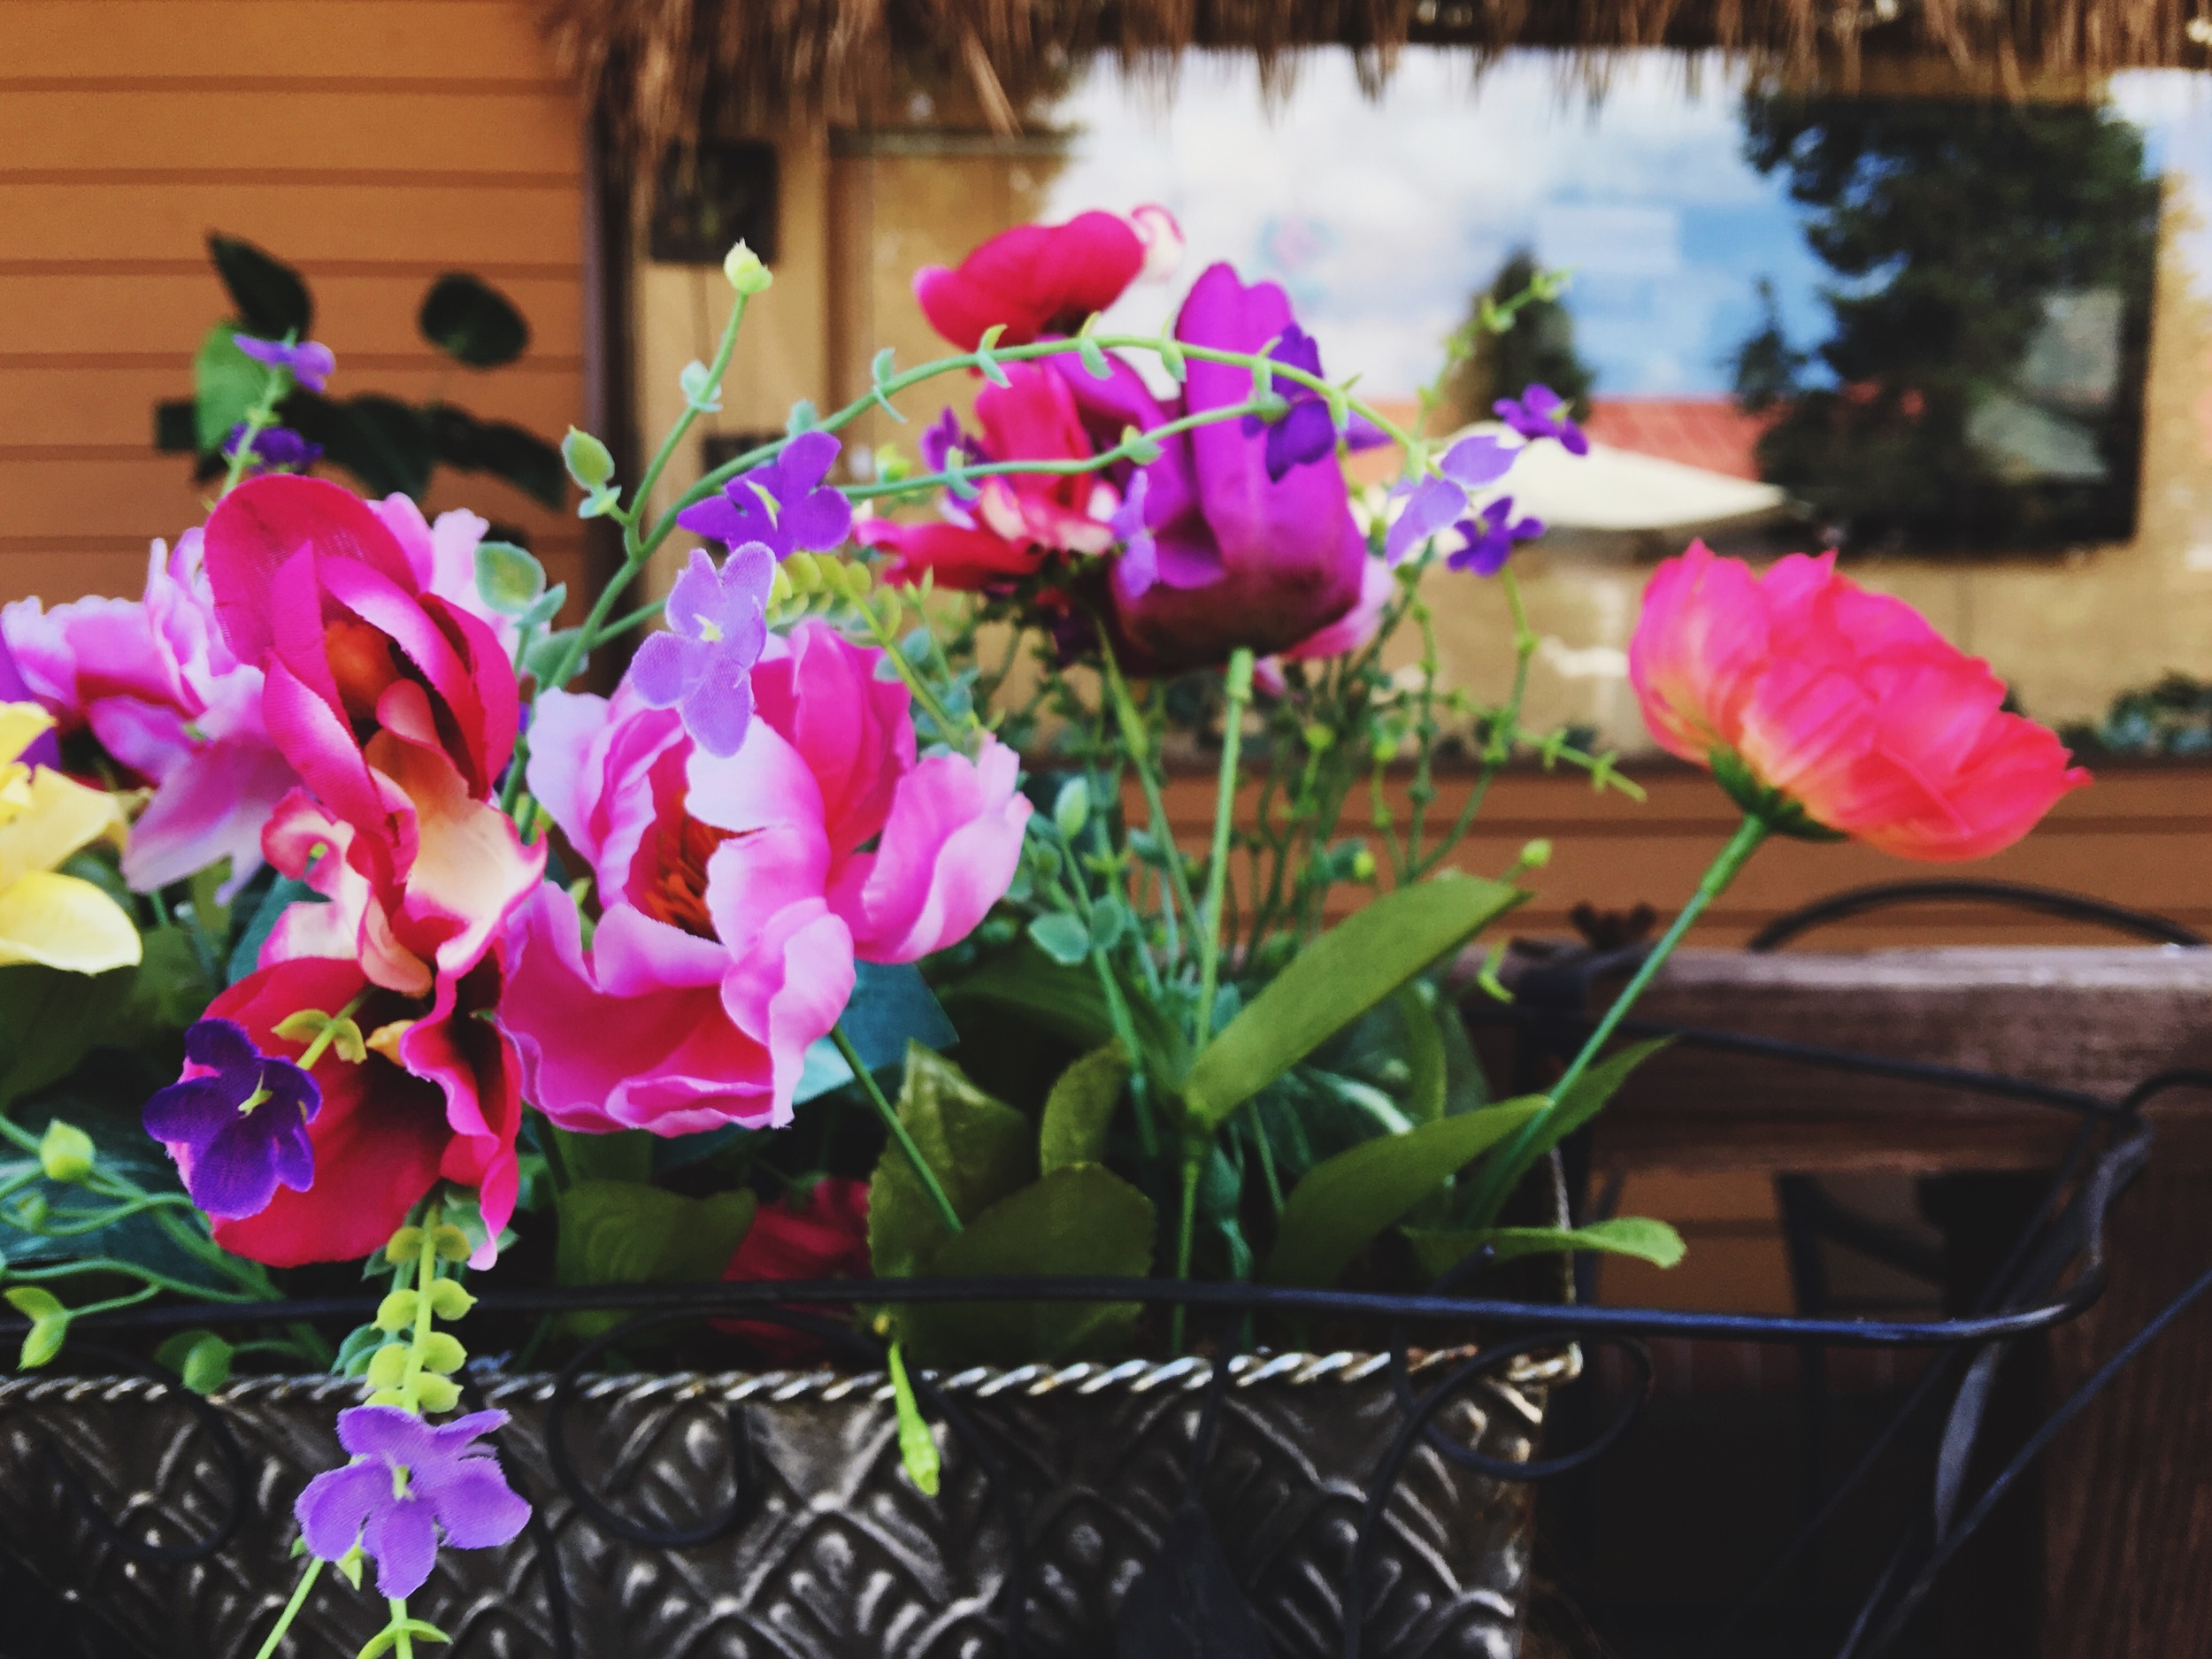 Pretty flowers during lunch with a friend.